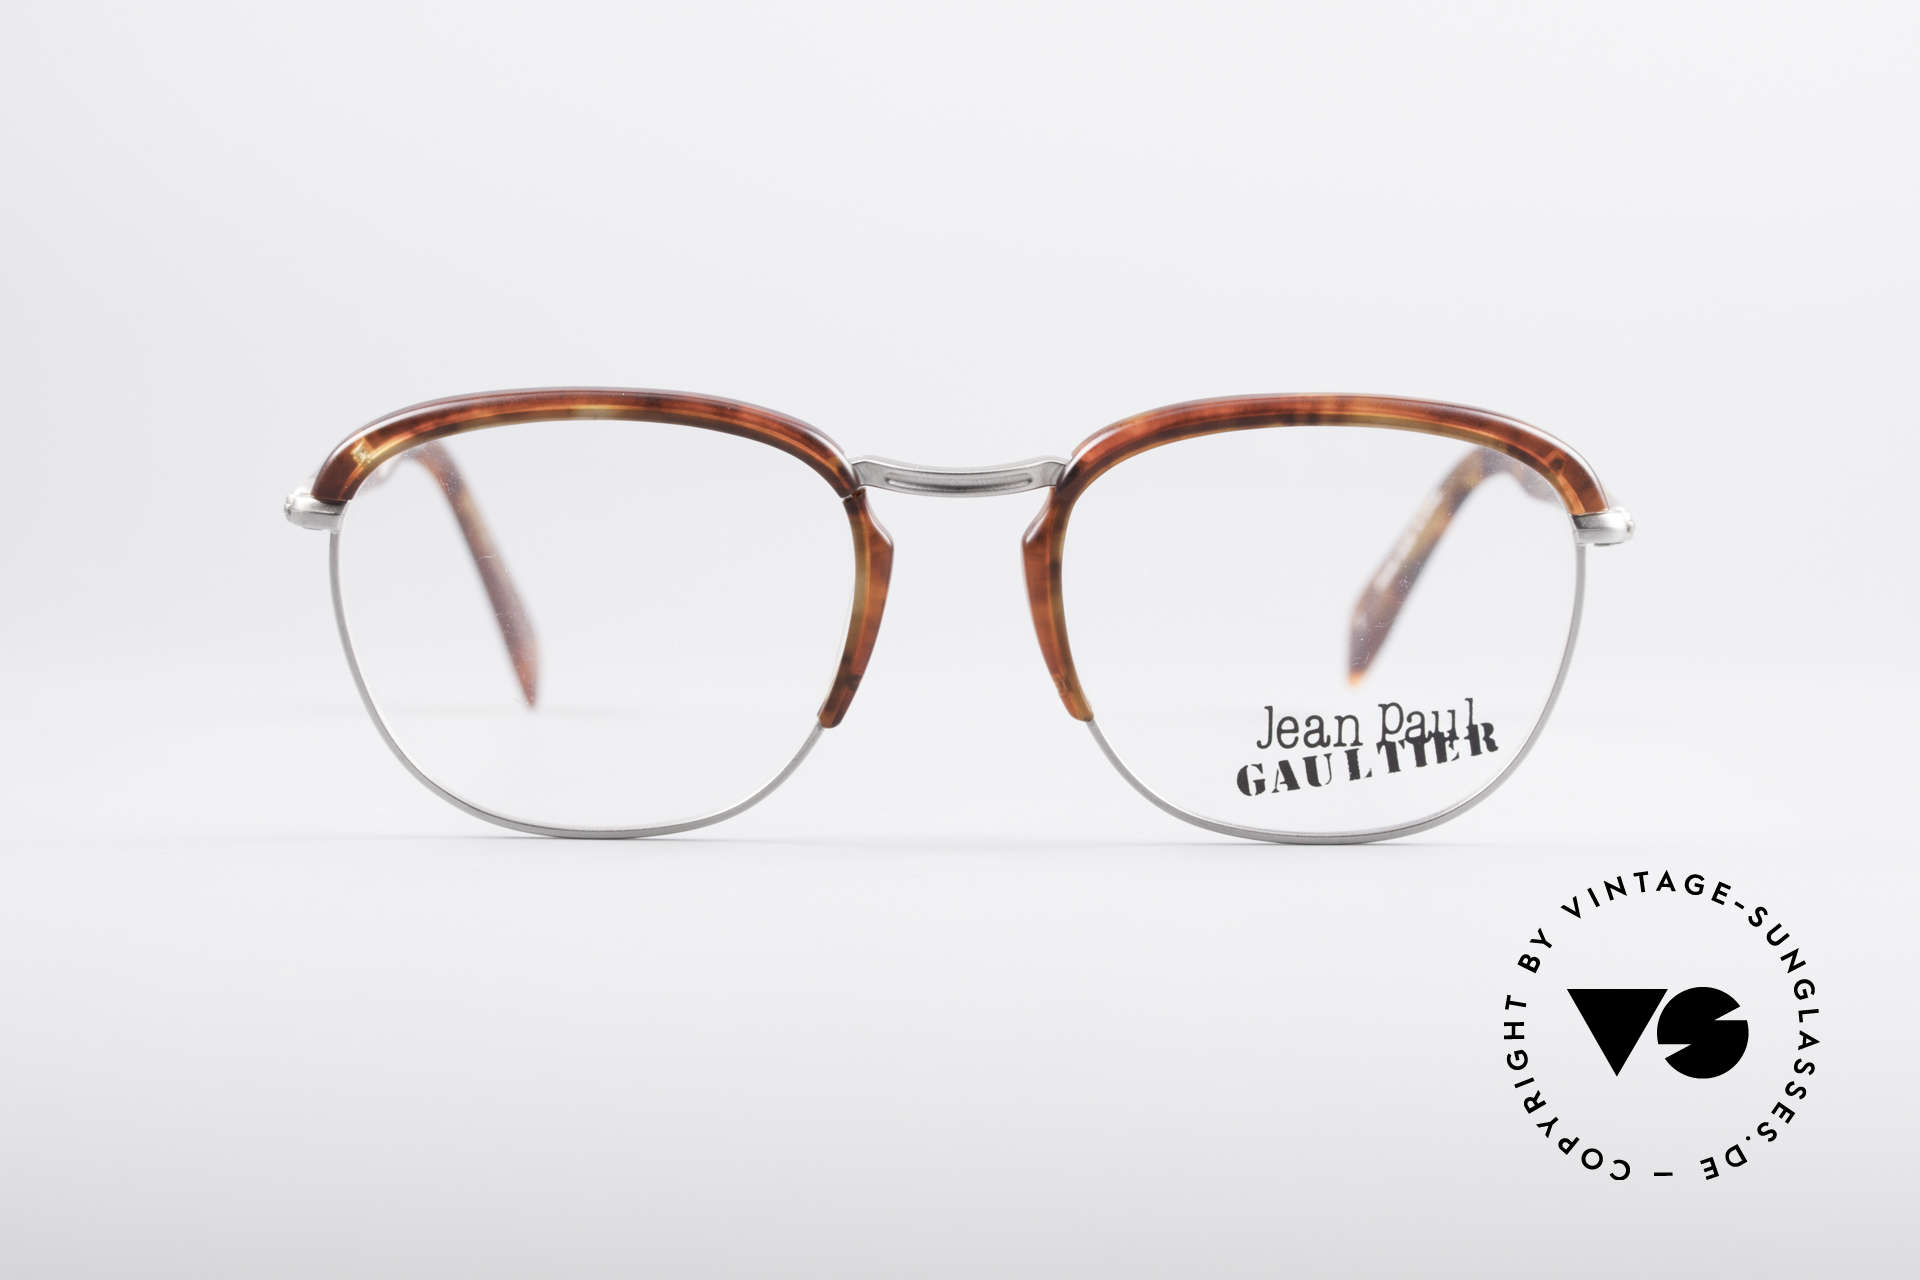 Jean Paul Gaultier 55-1273 Vintage 90's Specs, lightweight frame and very pleasant to wear, Made for Men and Women